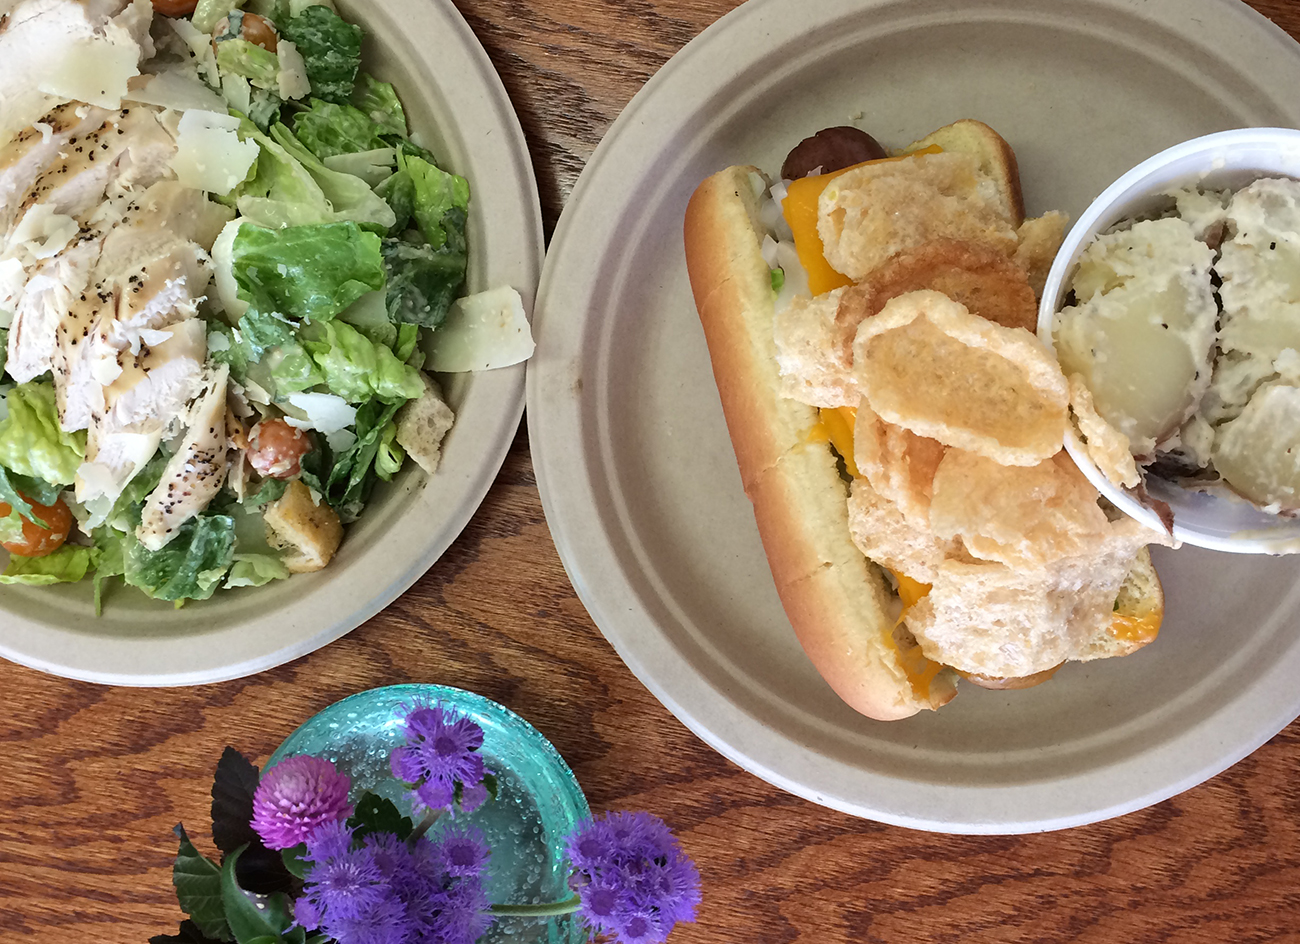 Why you should be driving to Waxhaw, NC right now: My lunch at Provisions Food & Drink